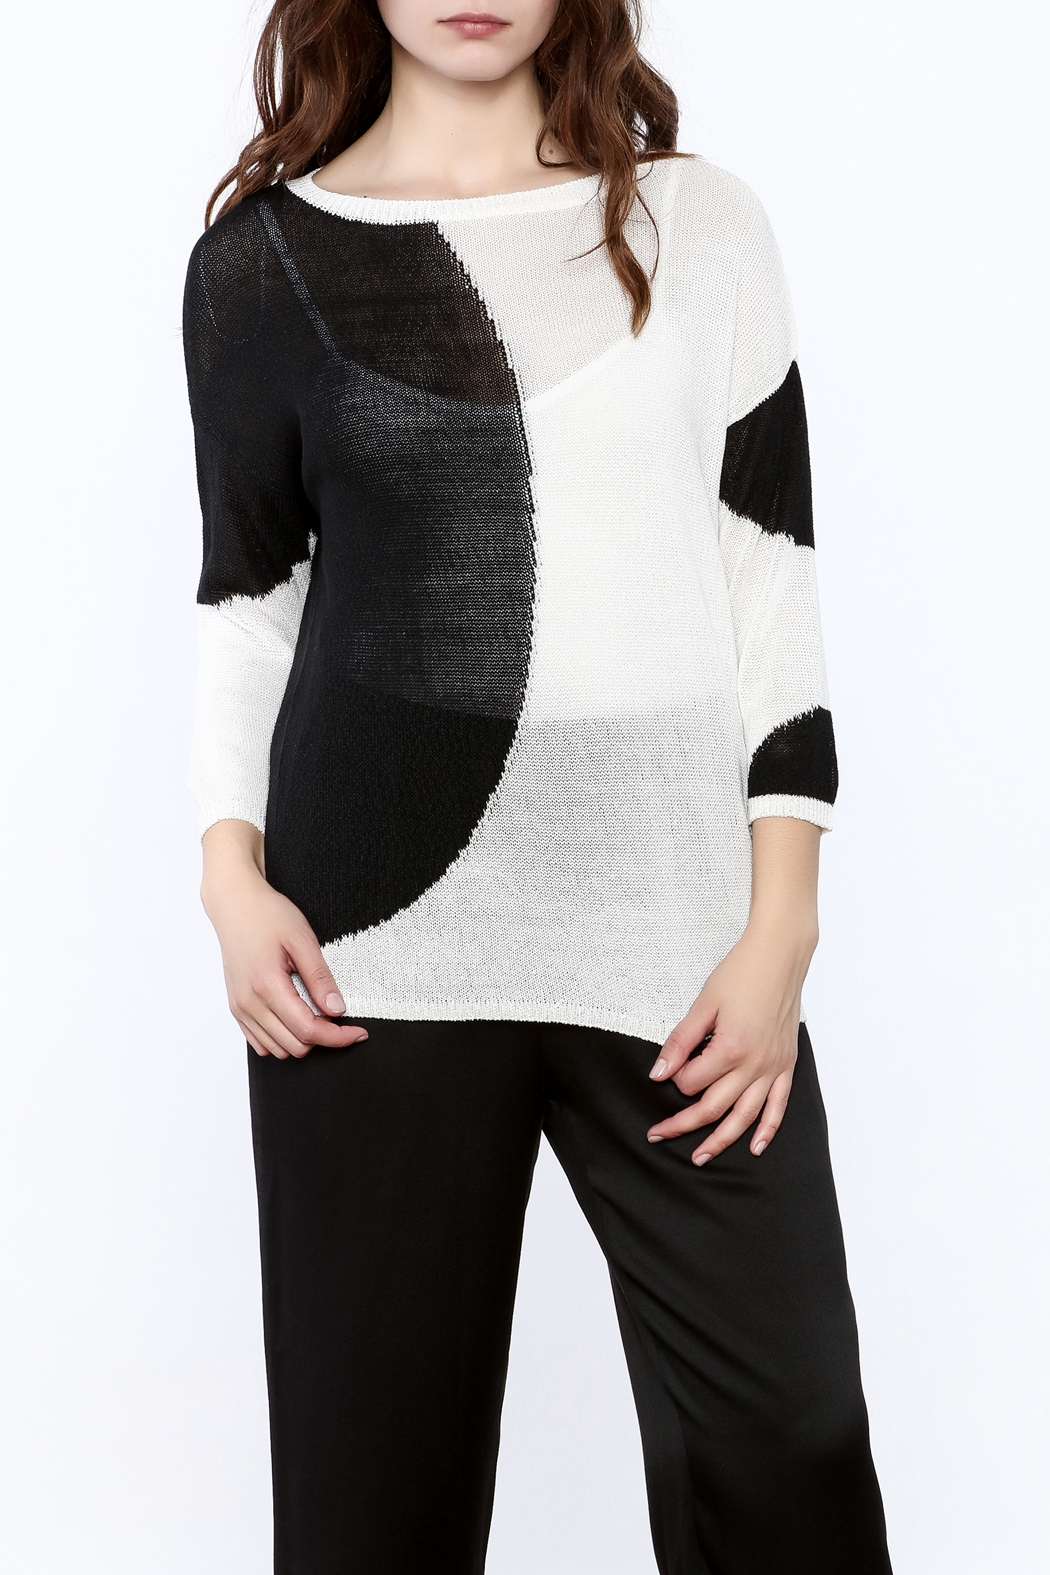 Katherine Barclay White And Black Sweater - Main Image